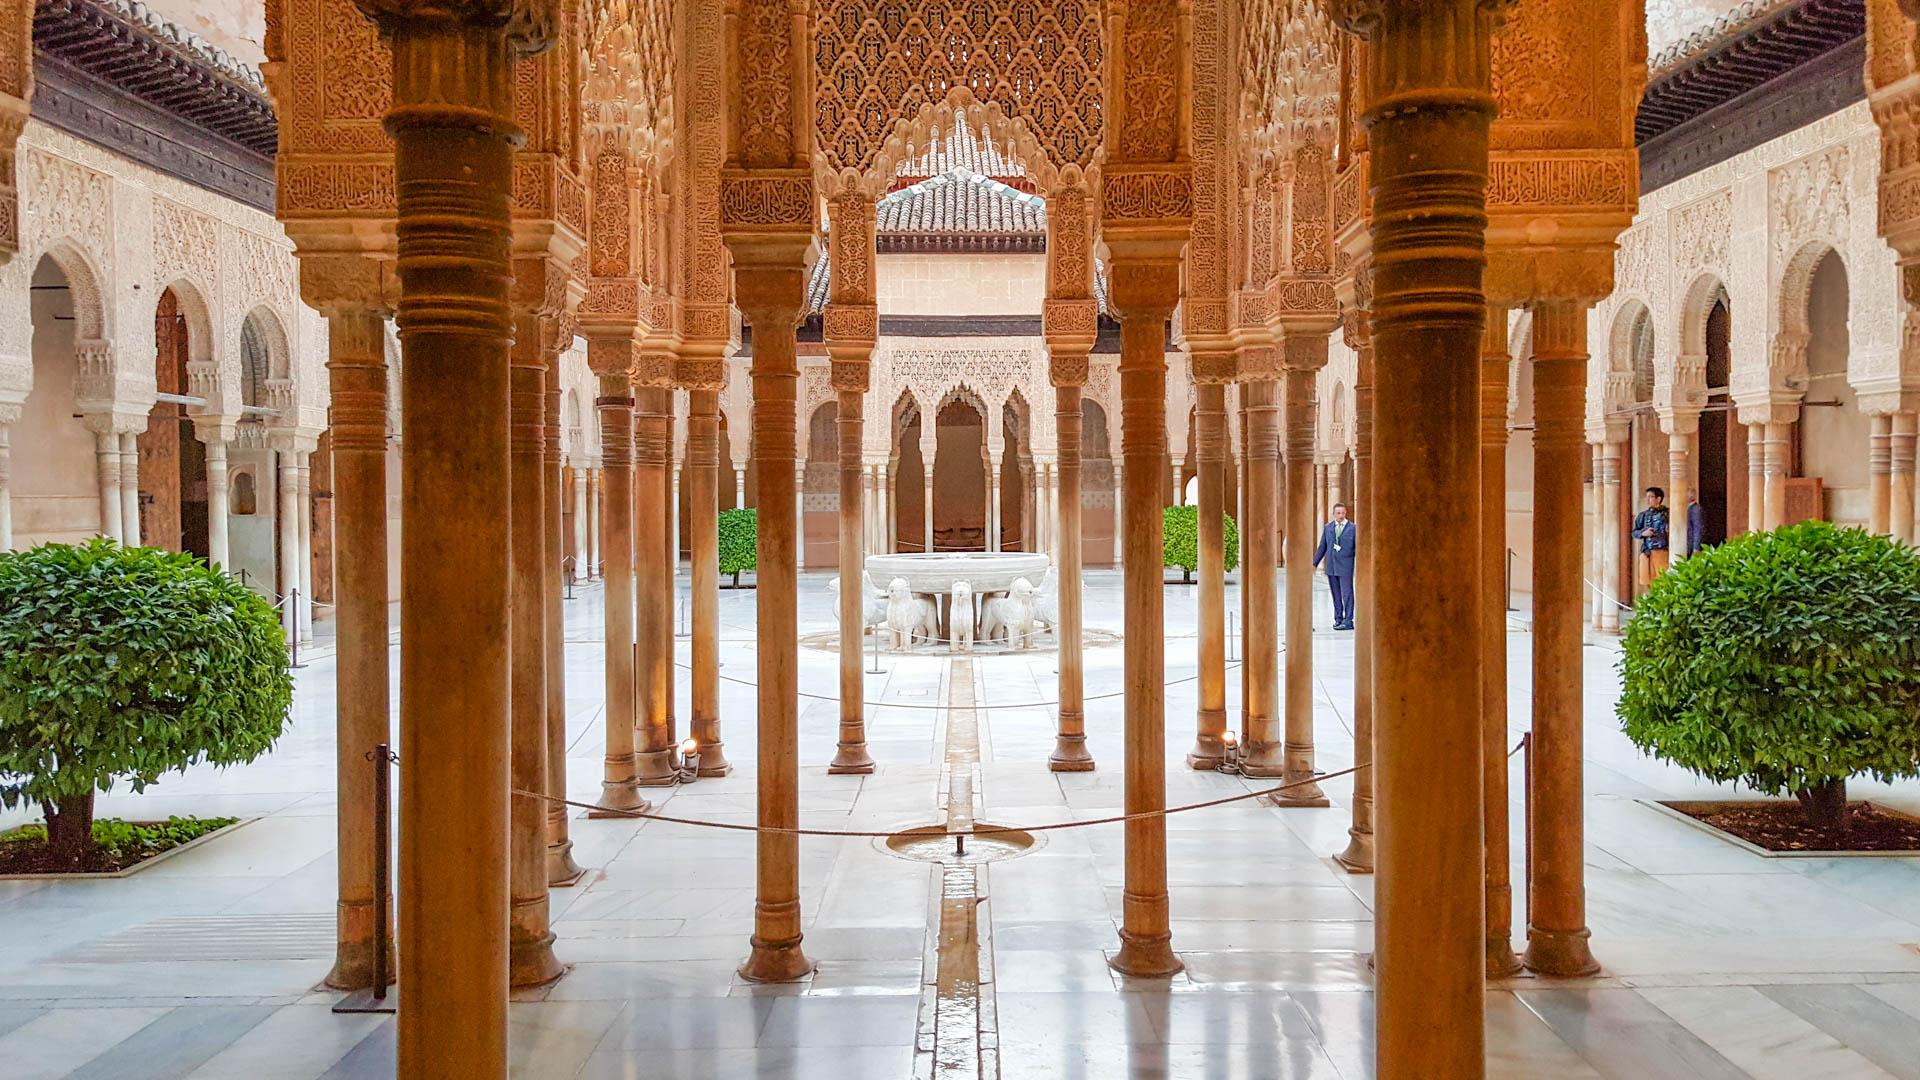 Photo http://blog.insightvacations.com/visiting-the-alhambra-palace/